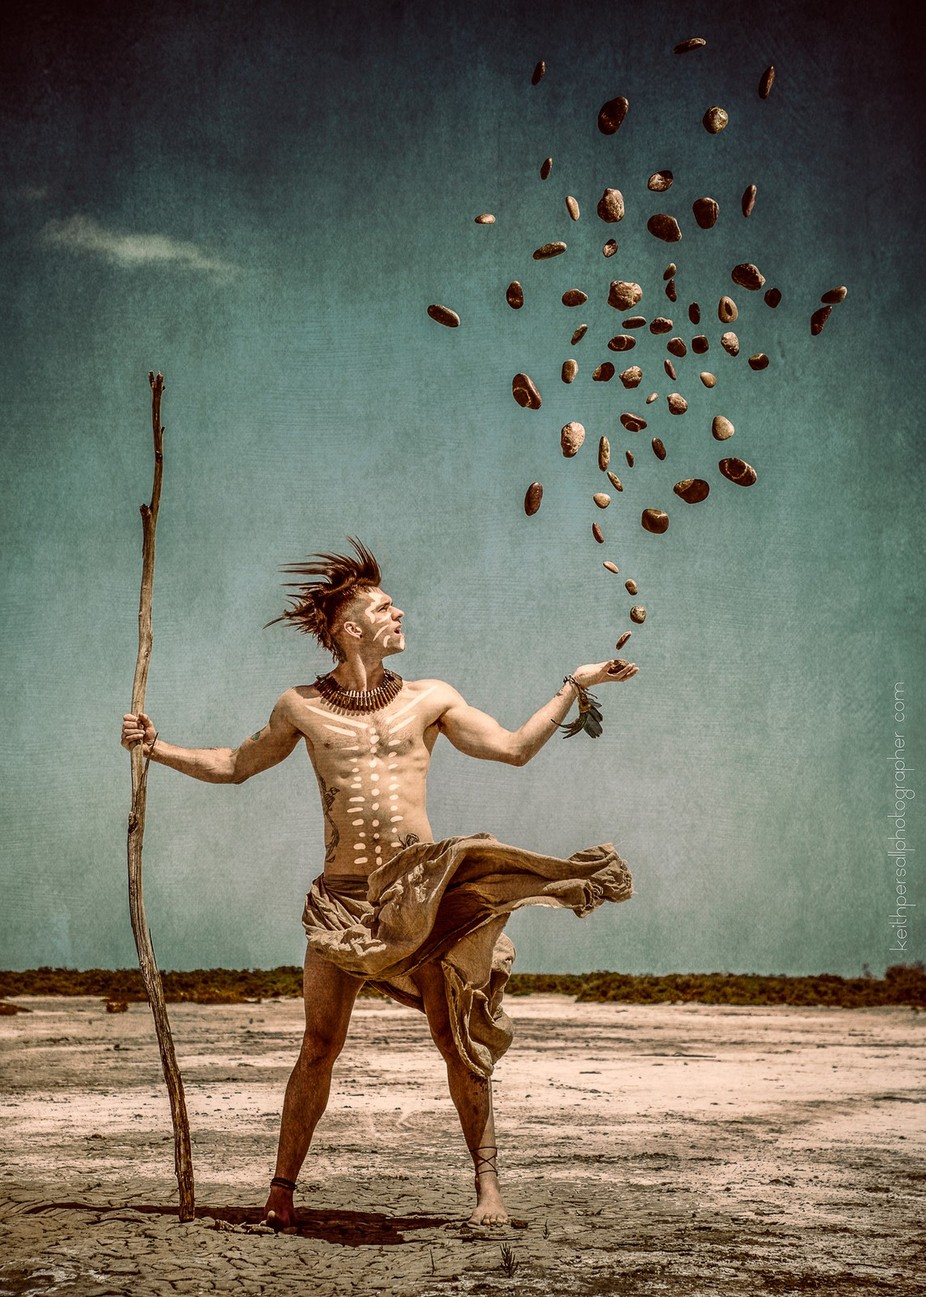 Tro Tribal by KeithPer - The Magic Of Editing Photo Contest